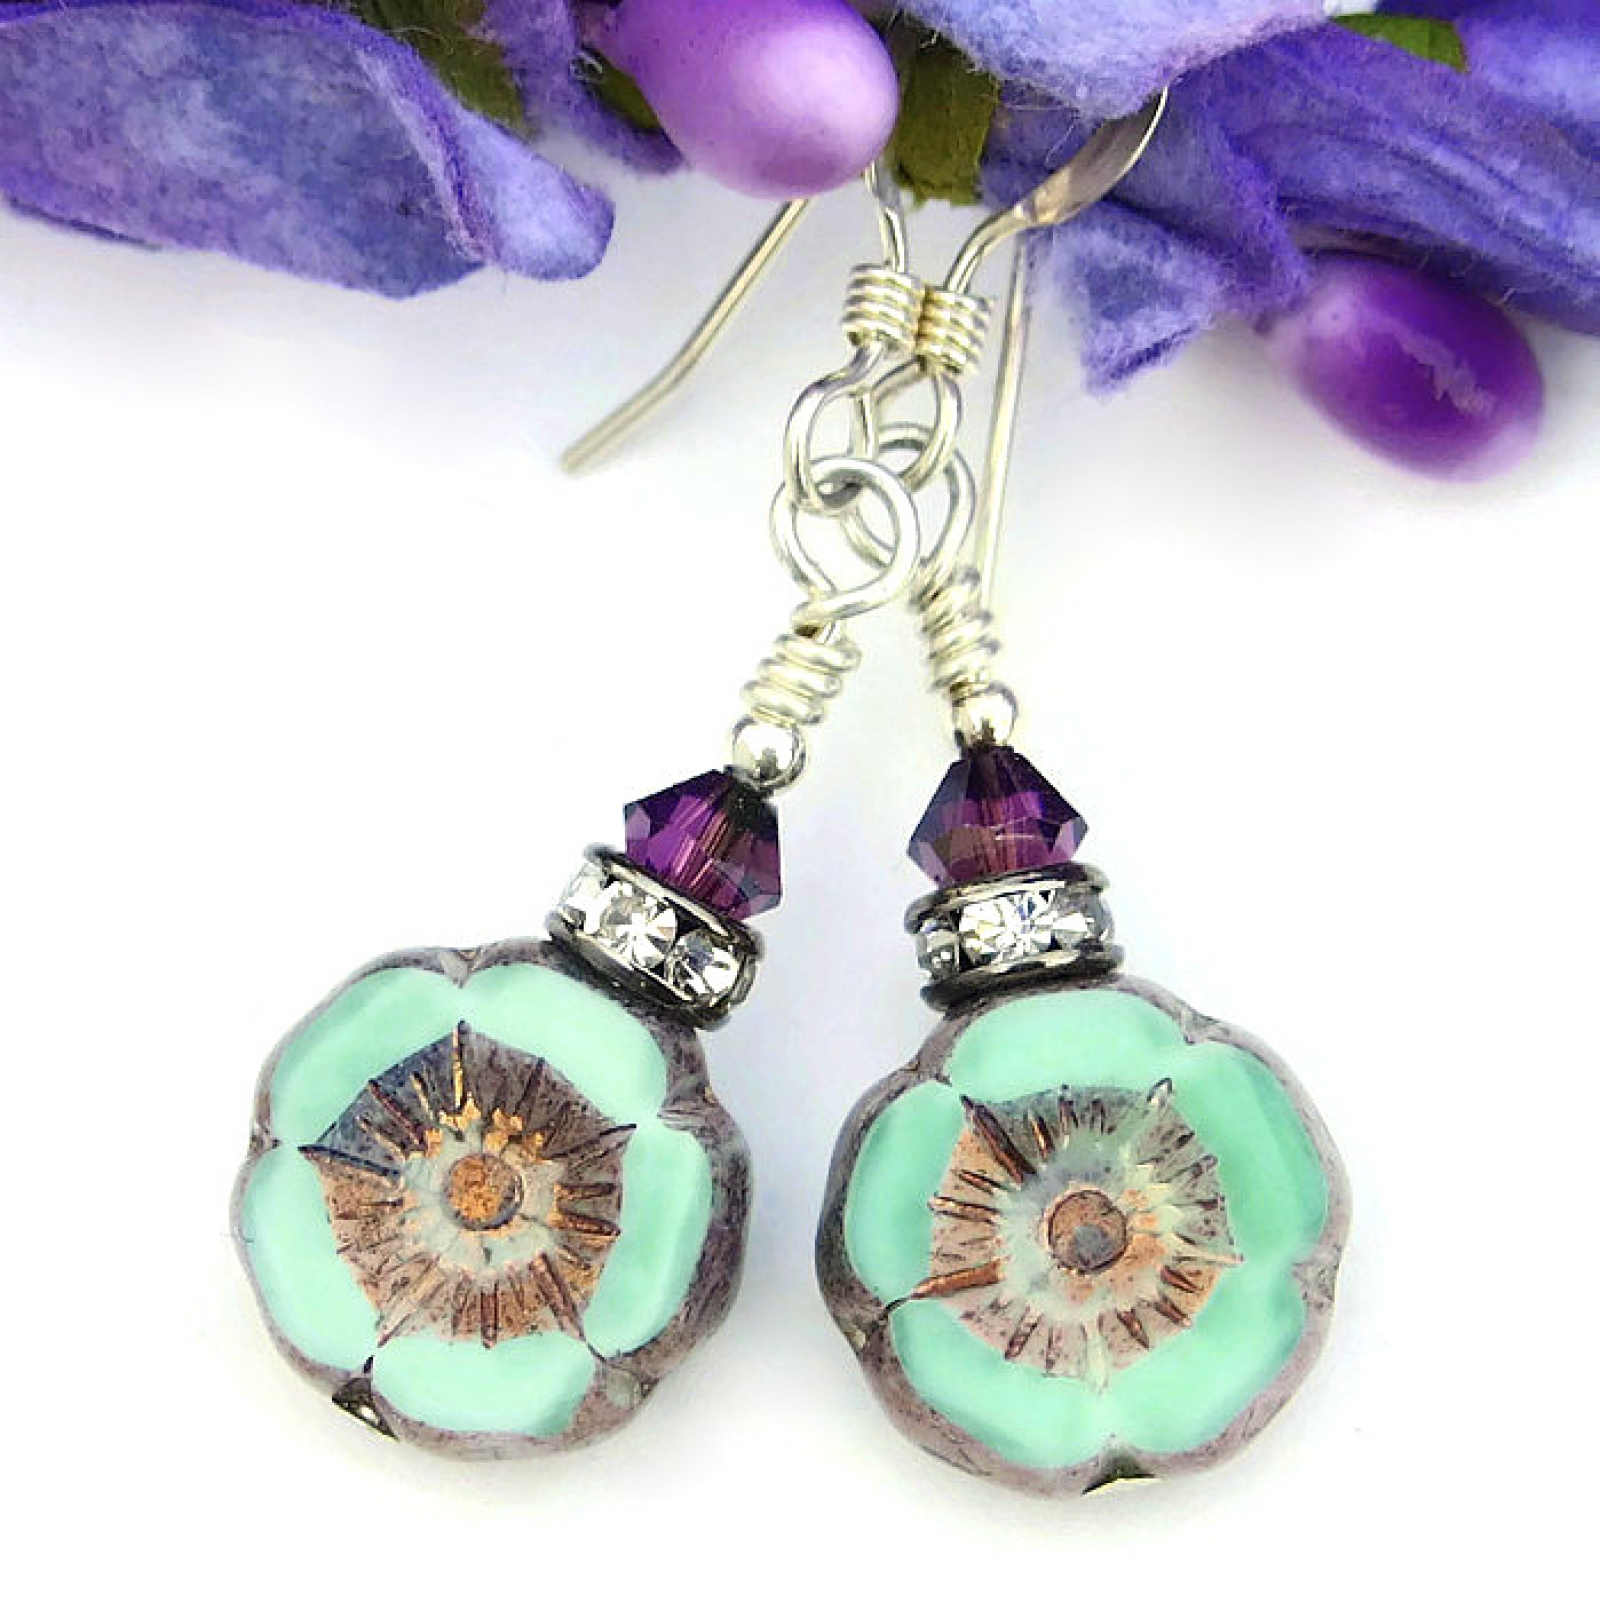 painted koyu flower koyuearringstud earrings talon products suneaters the purple poppy and